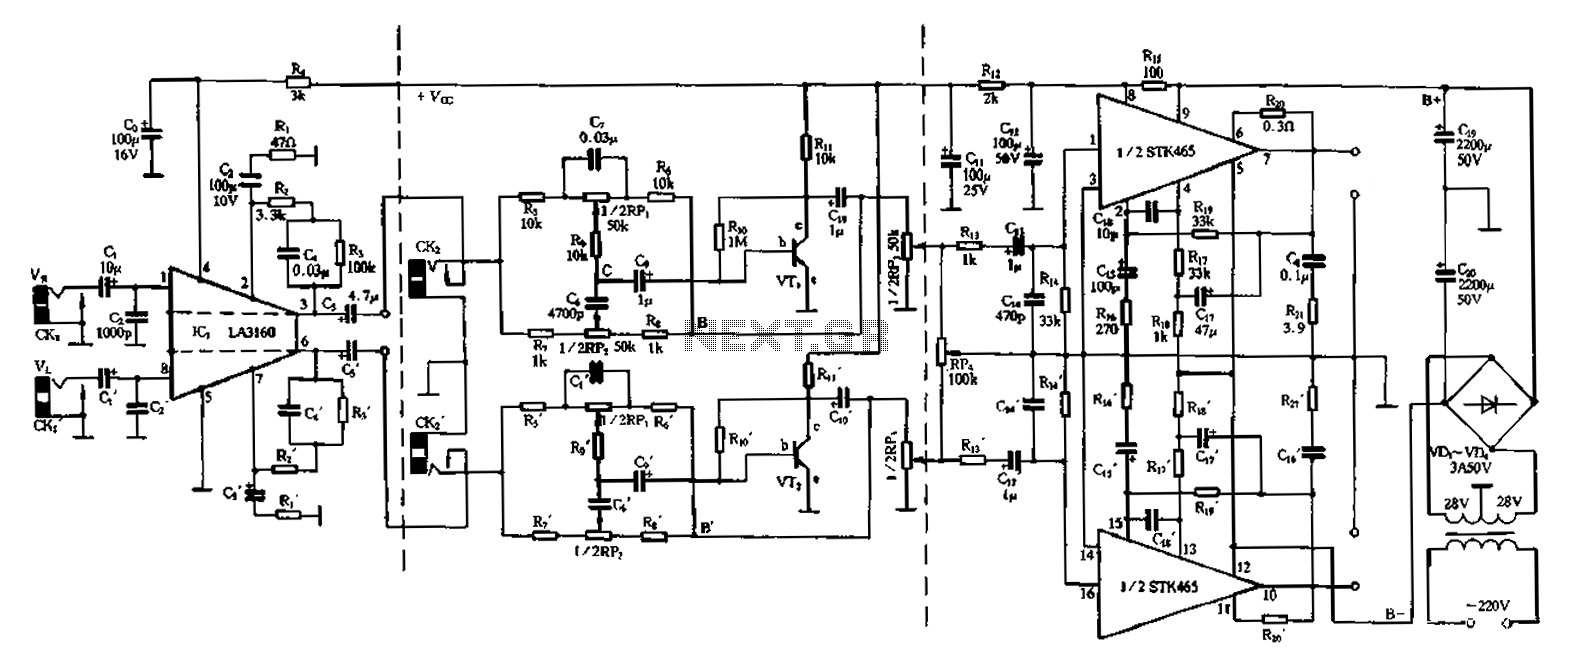 2 x 50 watt amplifier circuit